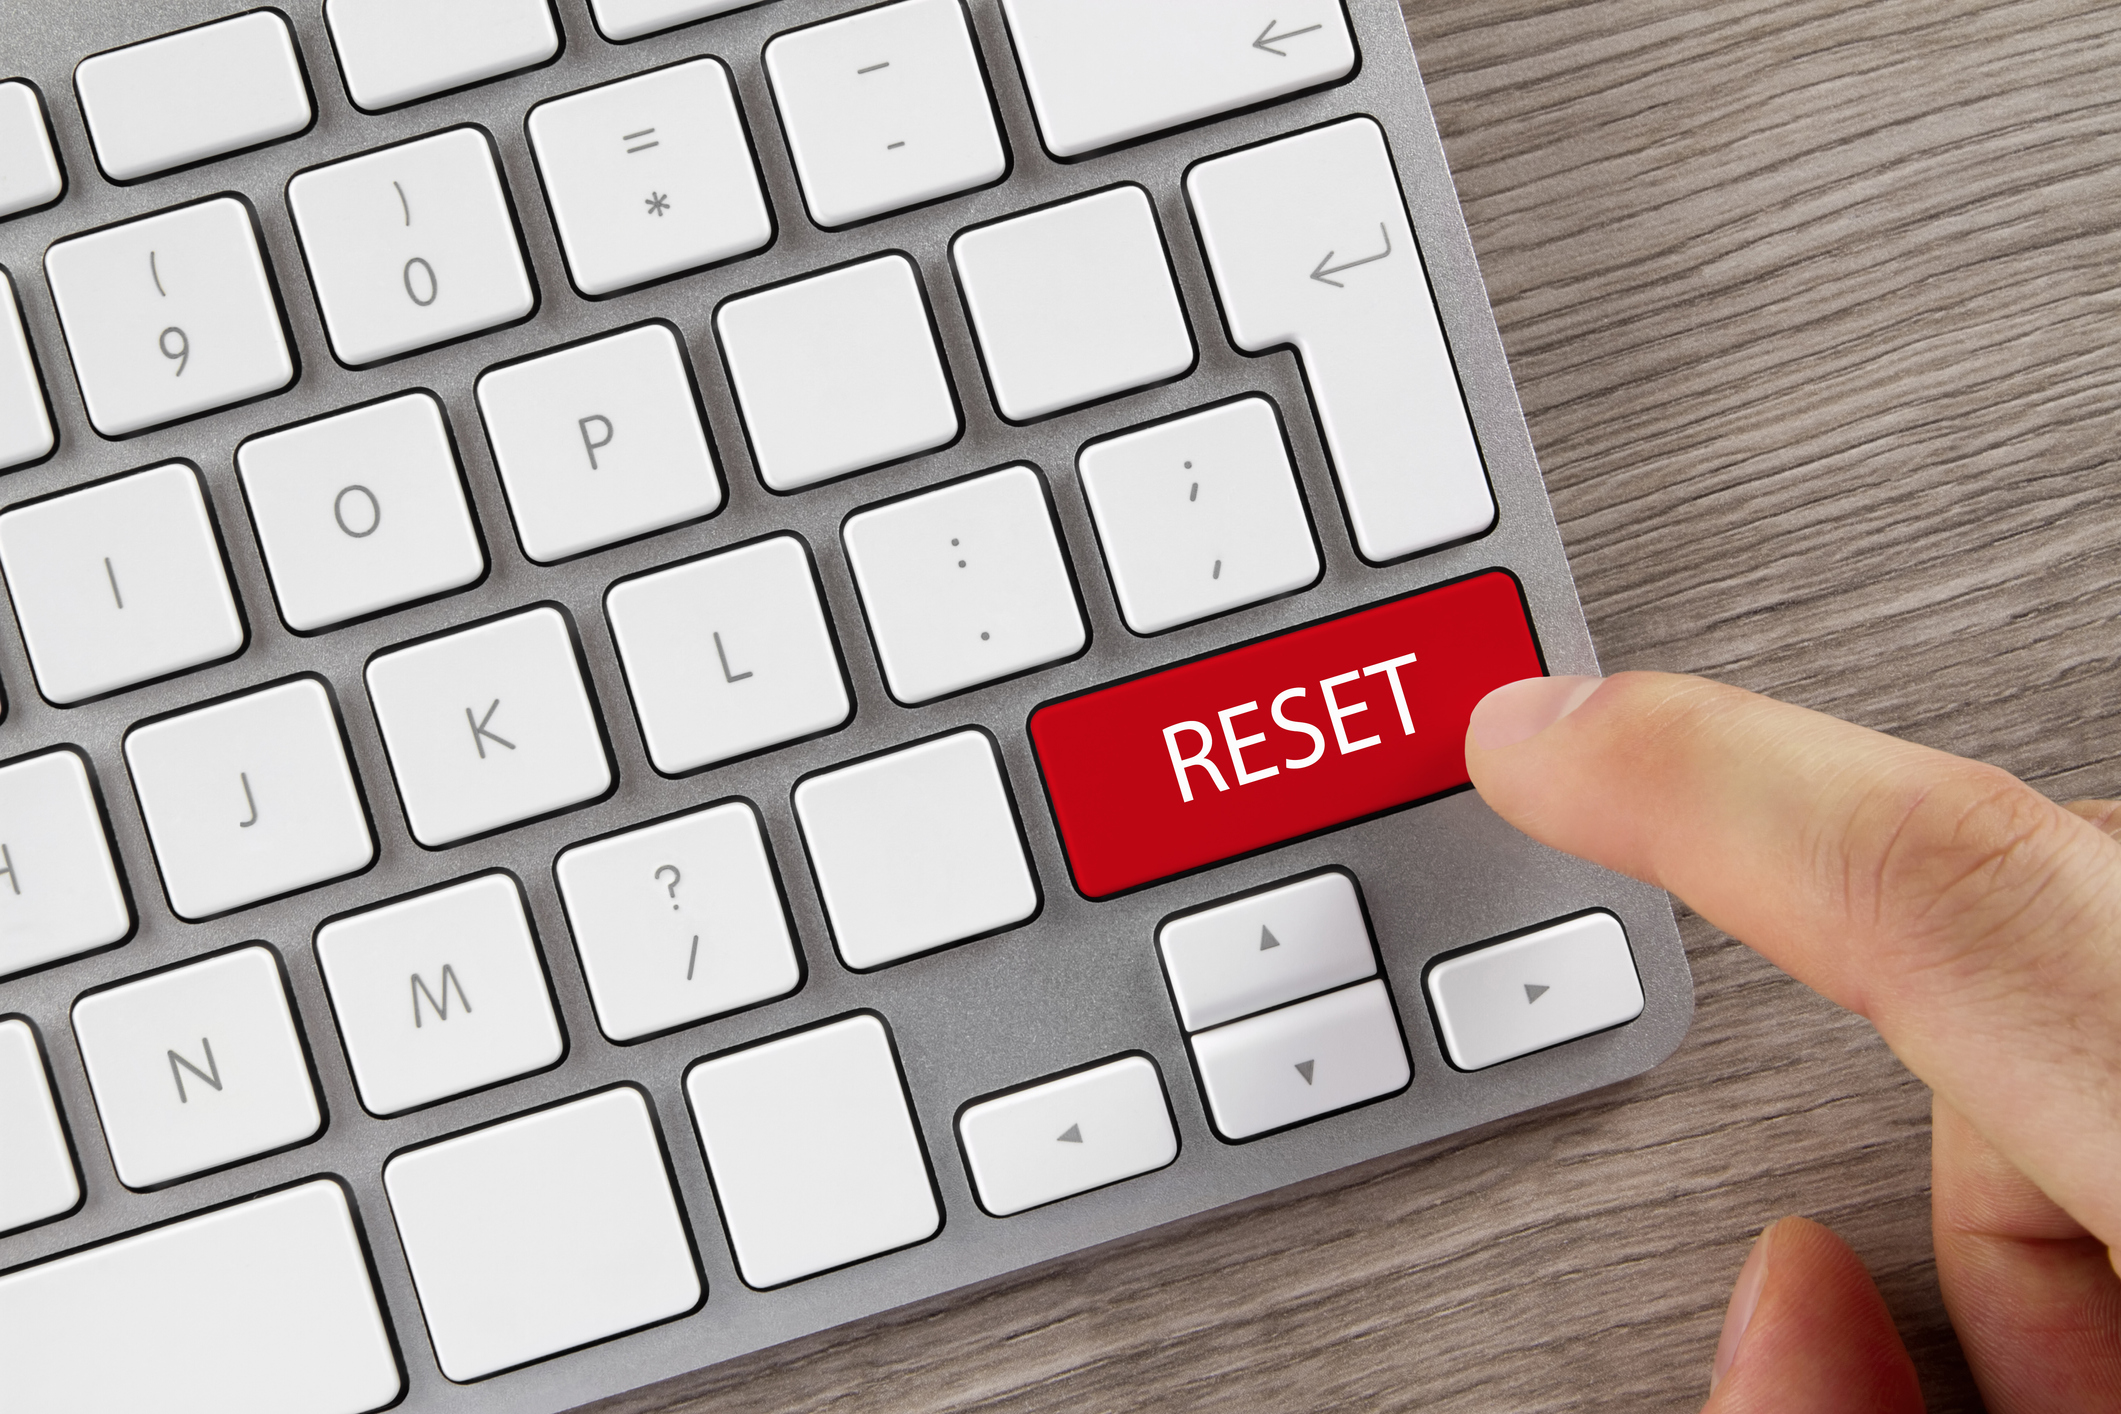 How to Reset During Stress